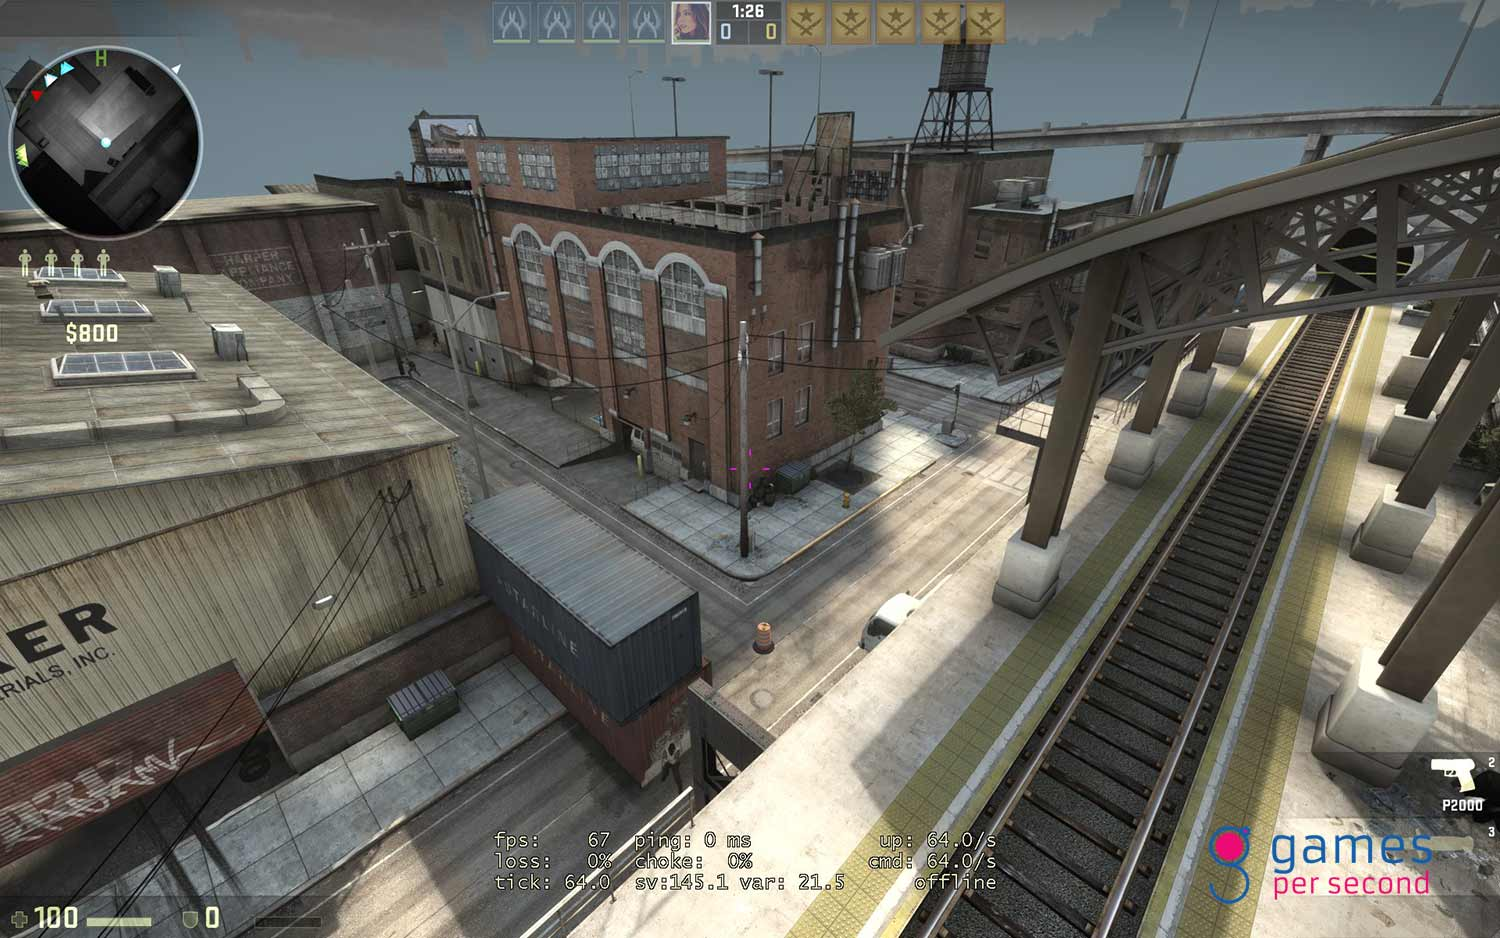 how to turn on wallhacks in csgo console